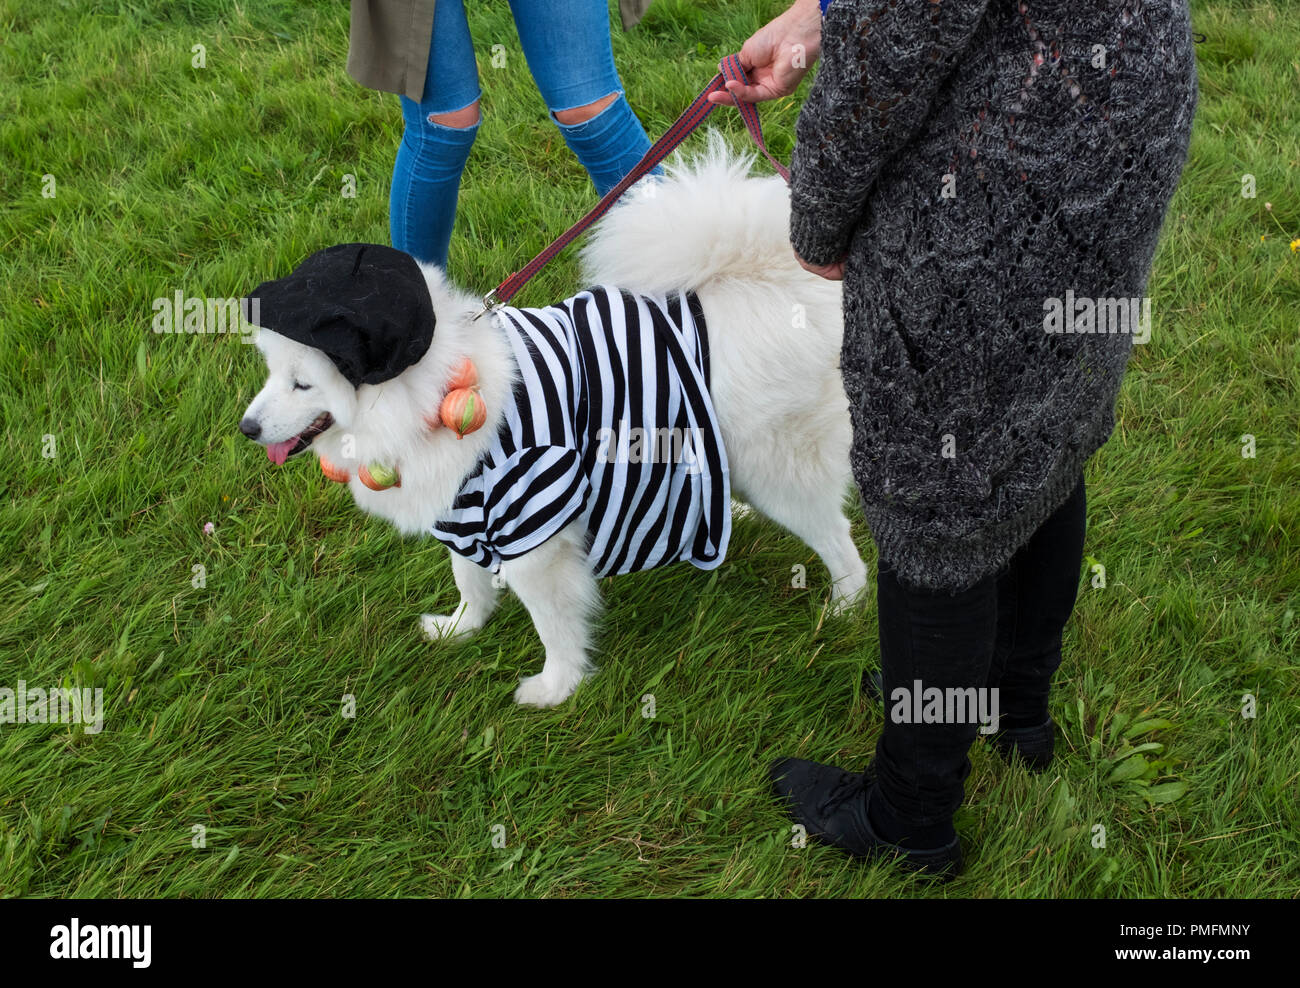 Samoyed dog dressed as a French onion seller during a dog show at the Chepstow Festival. Stock Photo